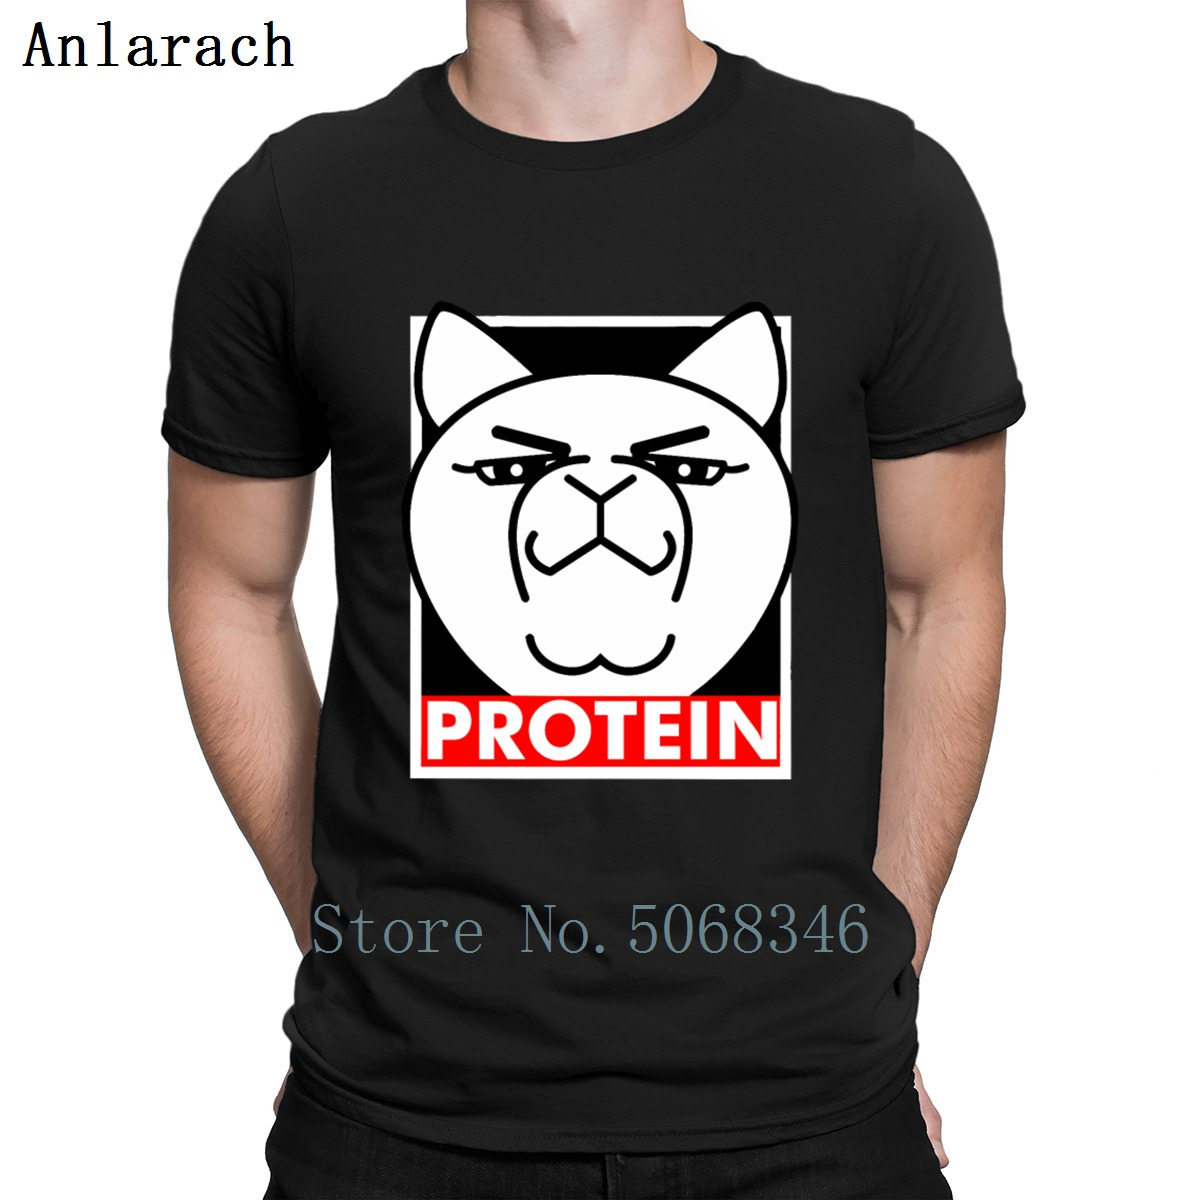 Protein Aggretsuko T Shirt Design Euro Size S-3xl Fit Spring Autumn Funny Casual Solid Color Outfit Tee Shirt Shirt